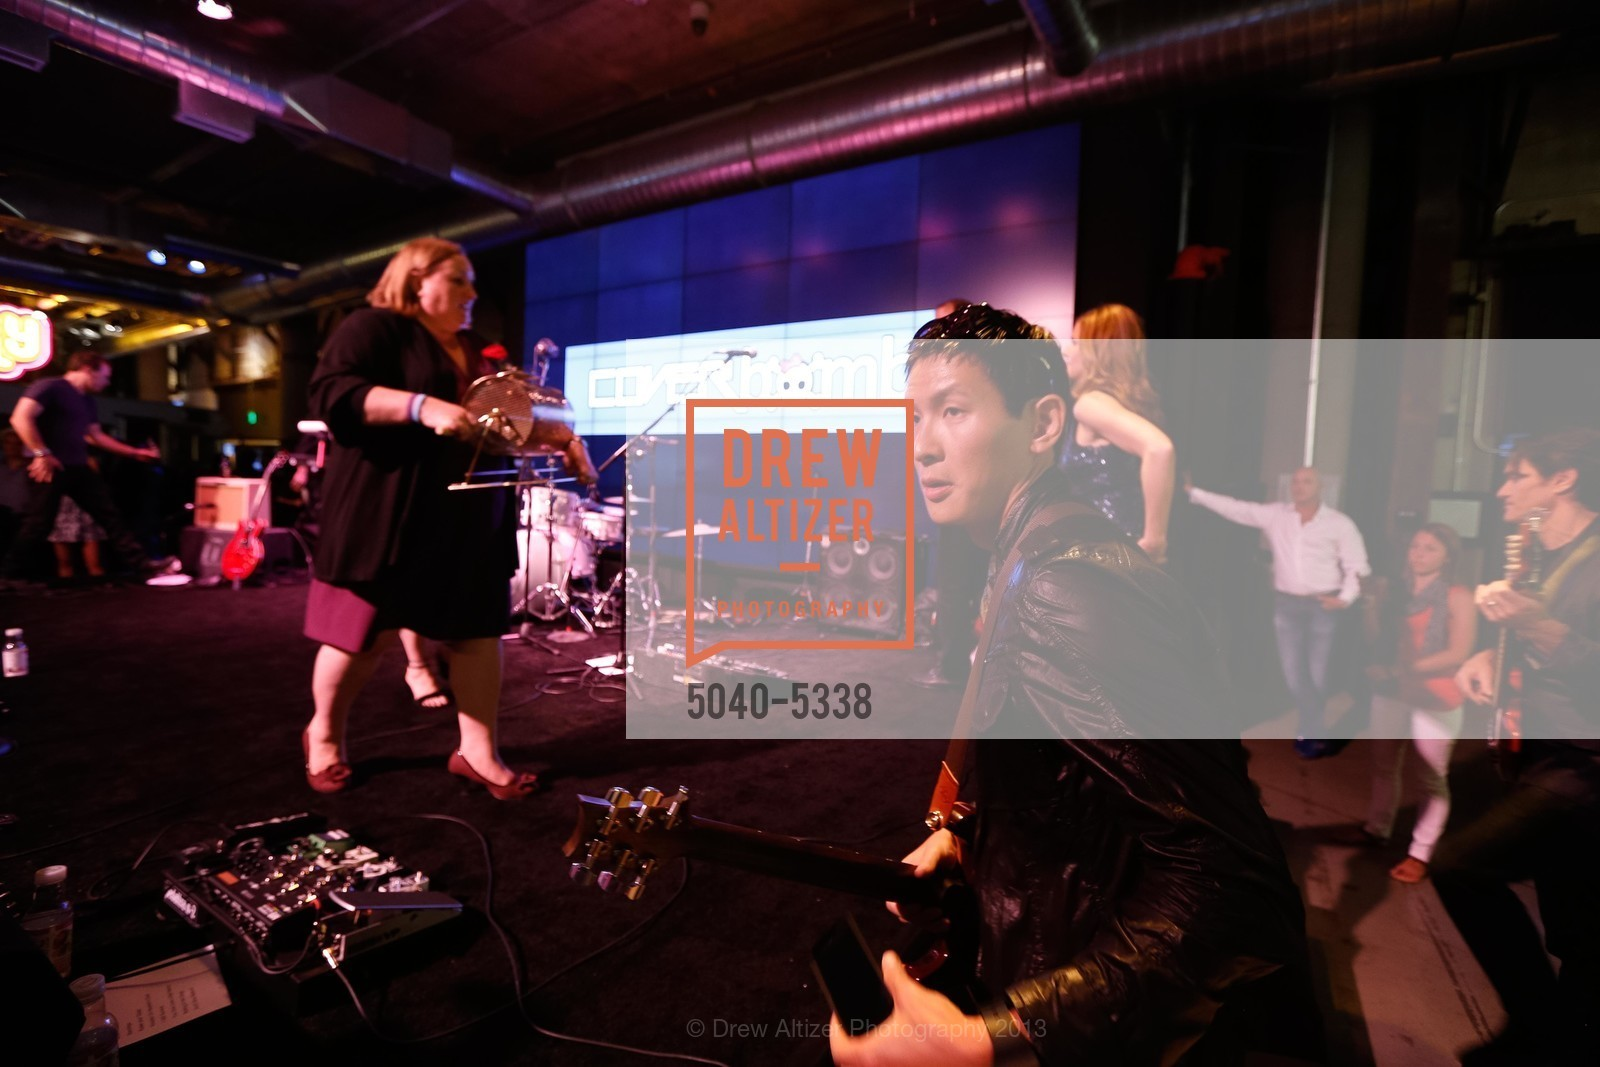 Performance By Coverflow, Photo #5040-5338